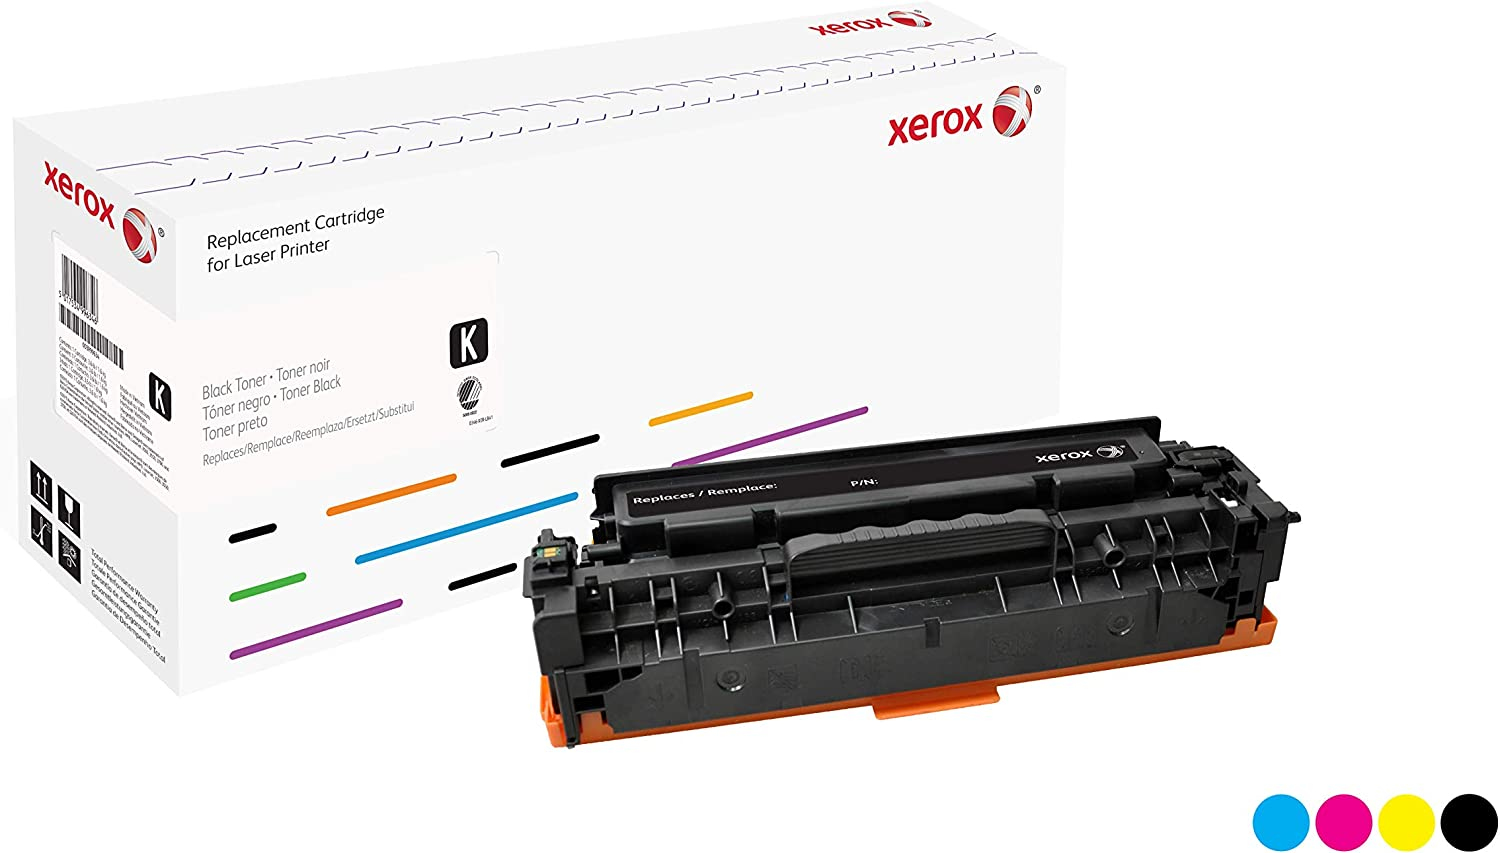 Xerox Remanufactured Cyan Toner Cartridge, Alternative for HP CE321A 128A, 1300 Yield (106R02223)